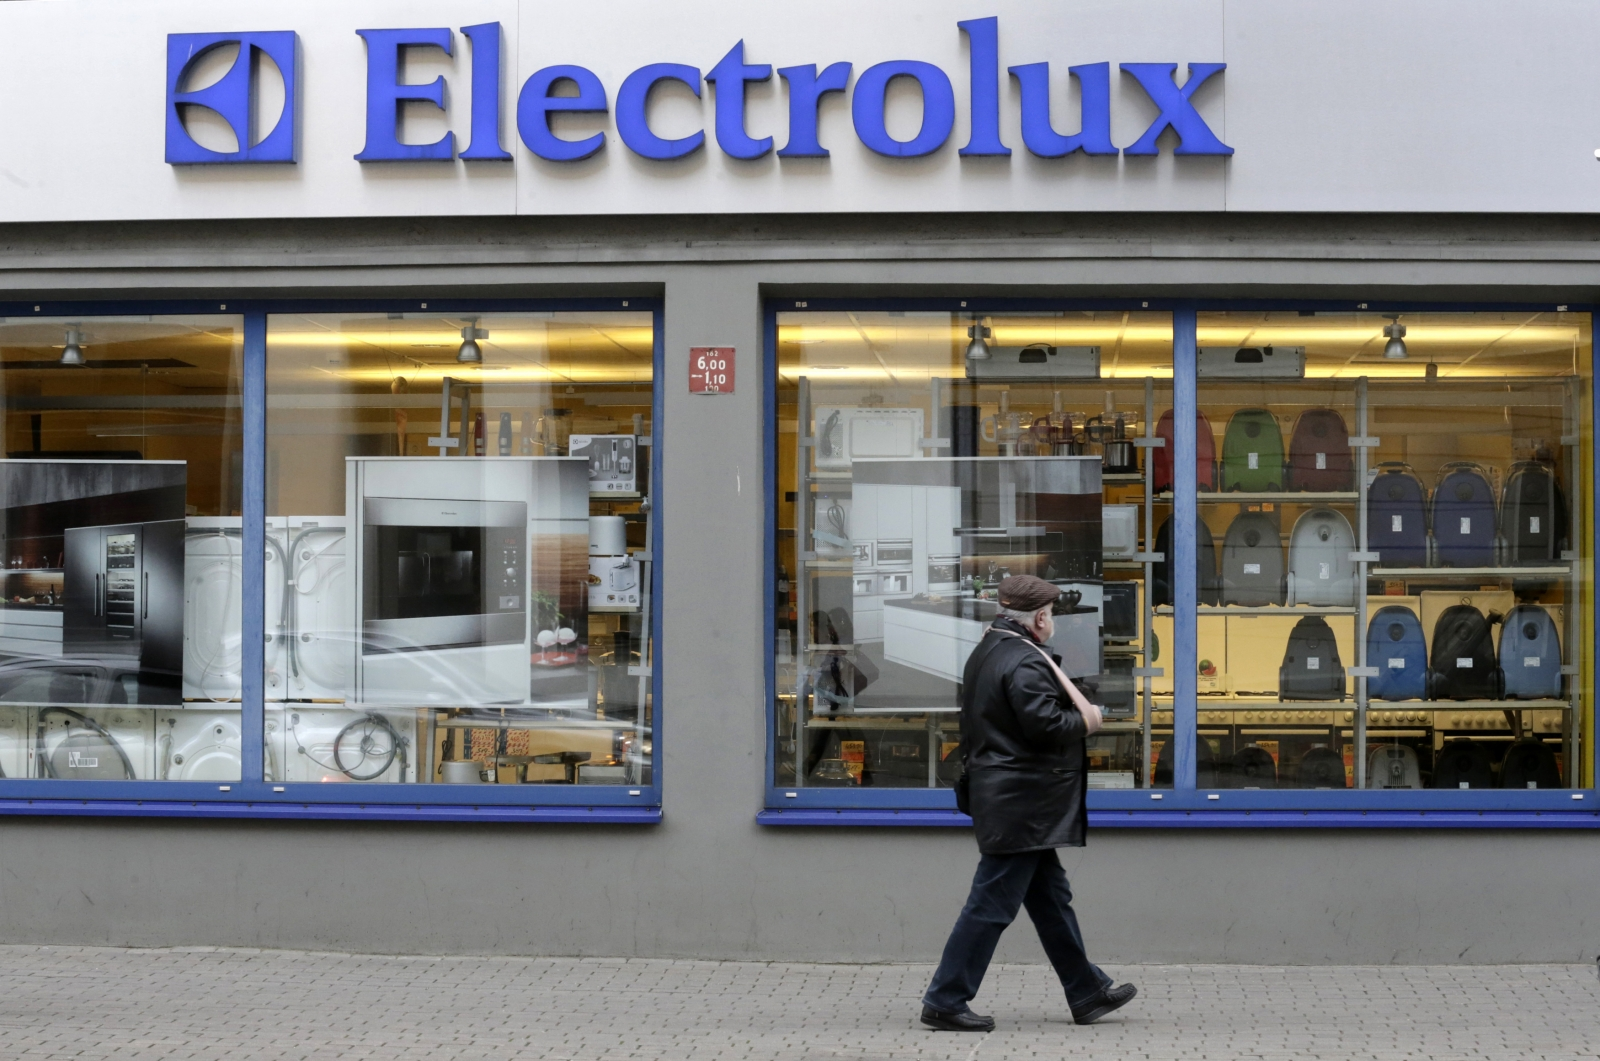 Electrolux shop in Riga